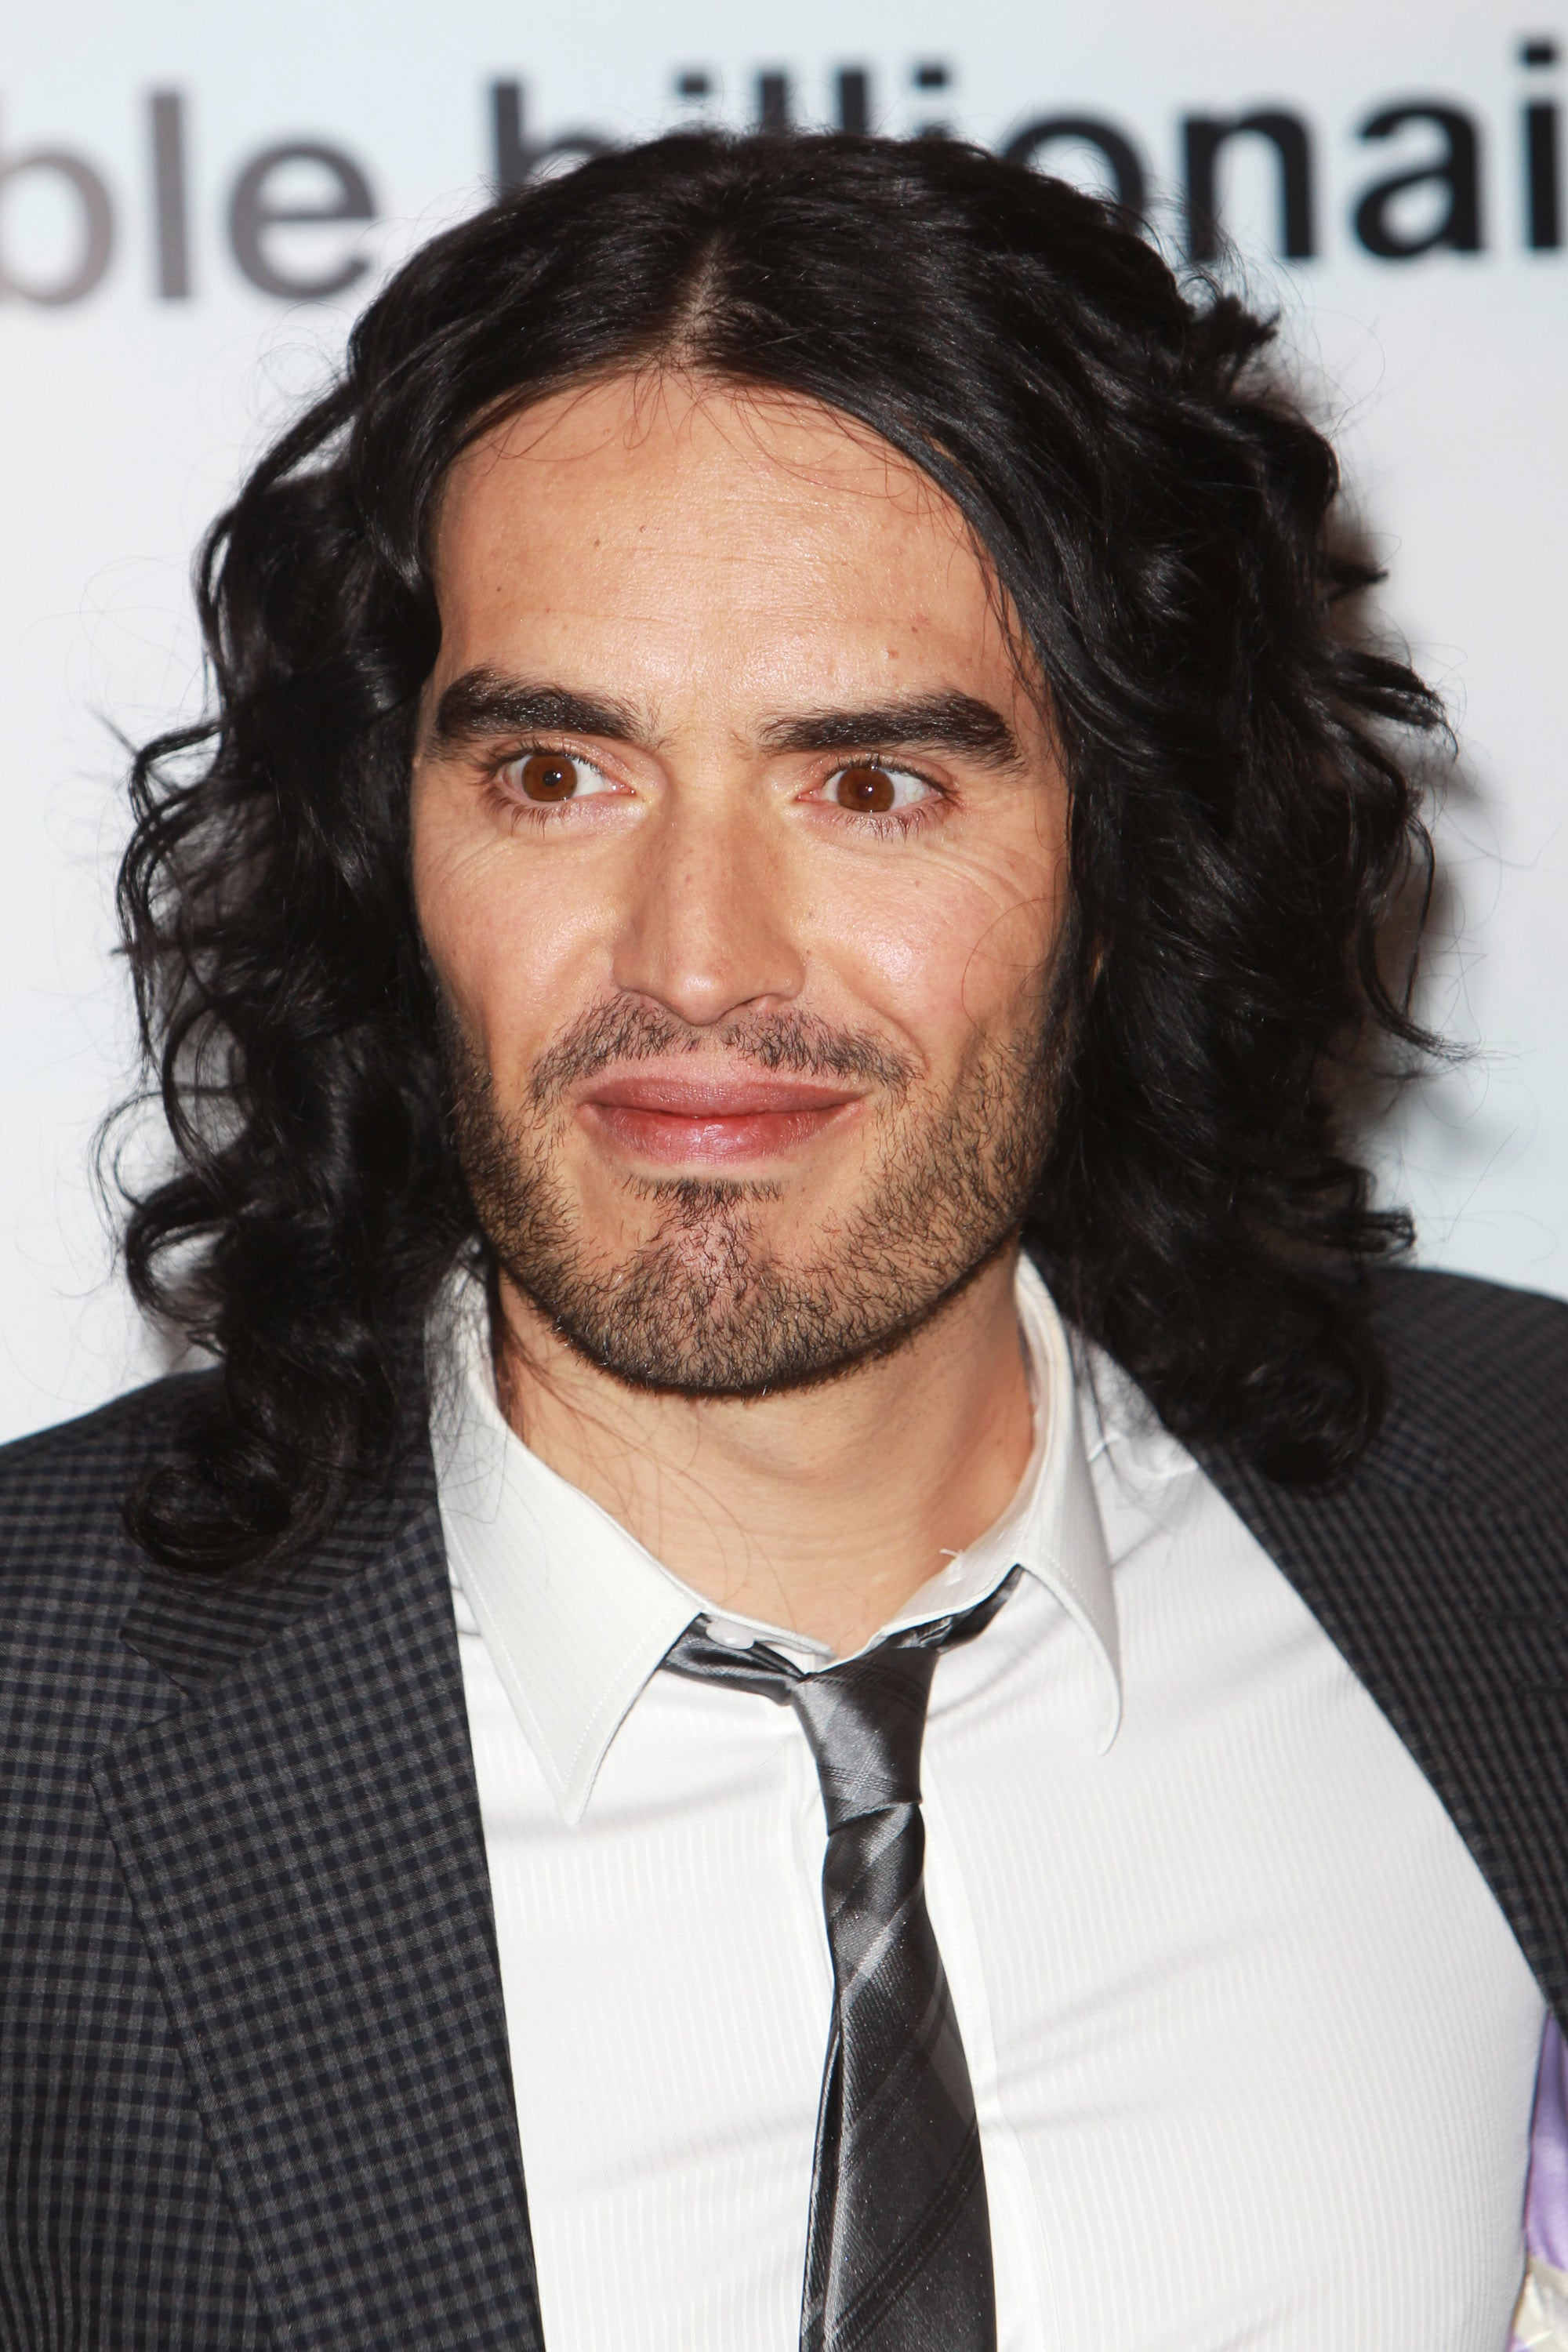 Russell Brand For mobile